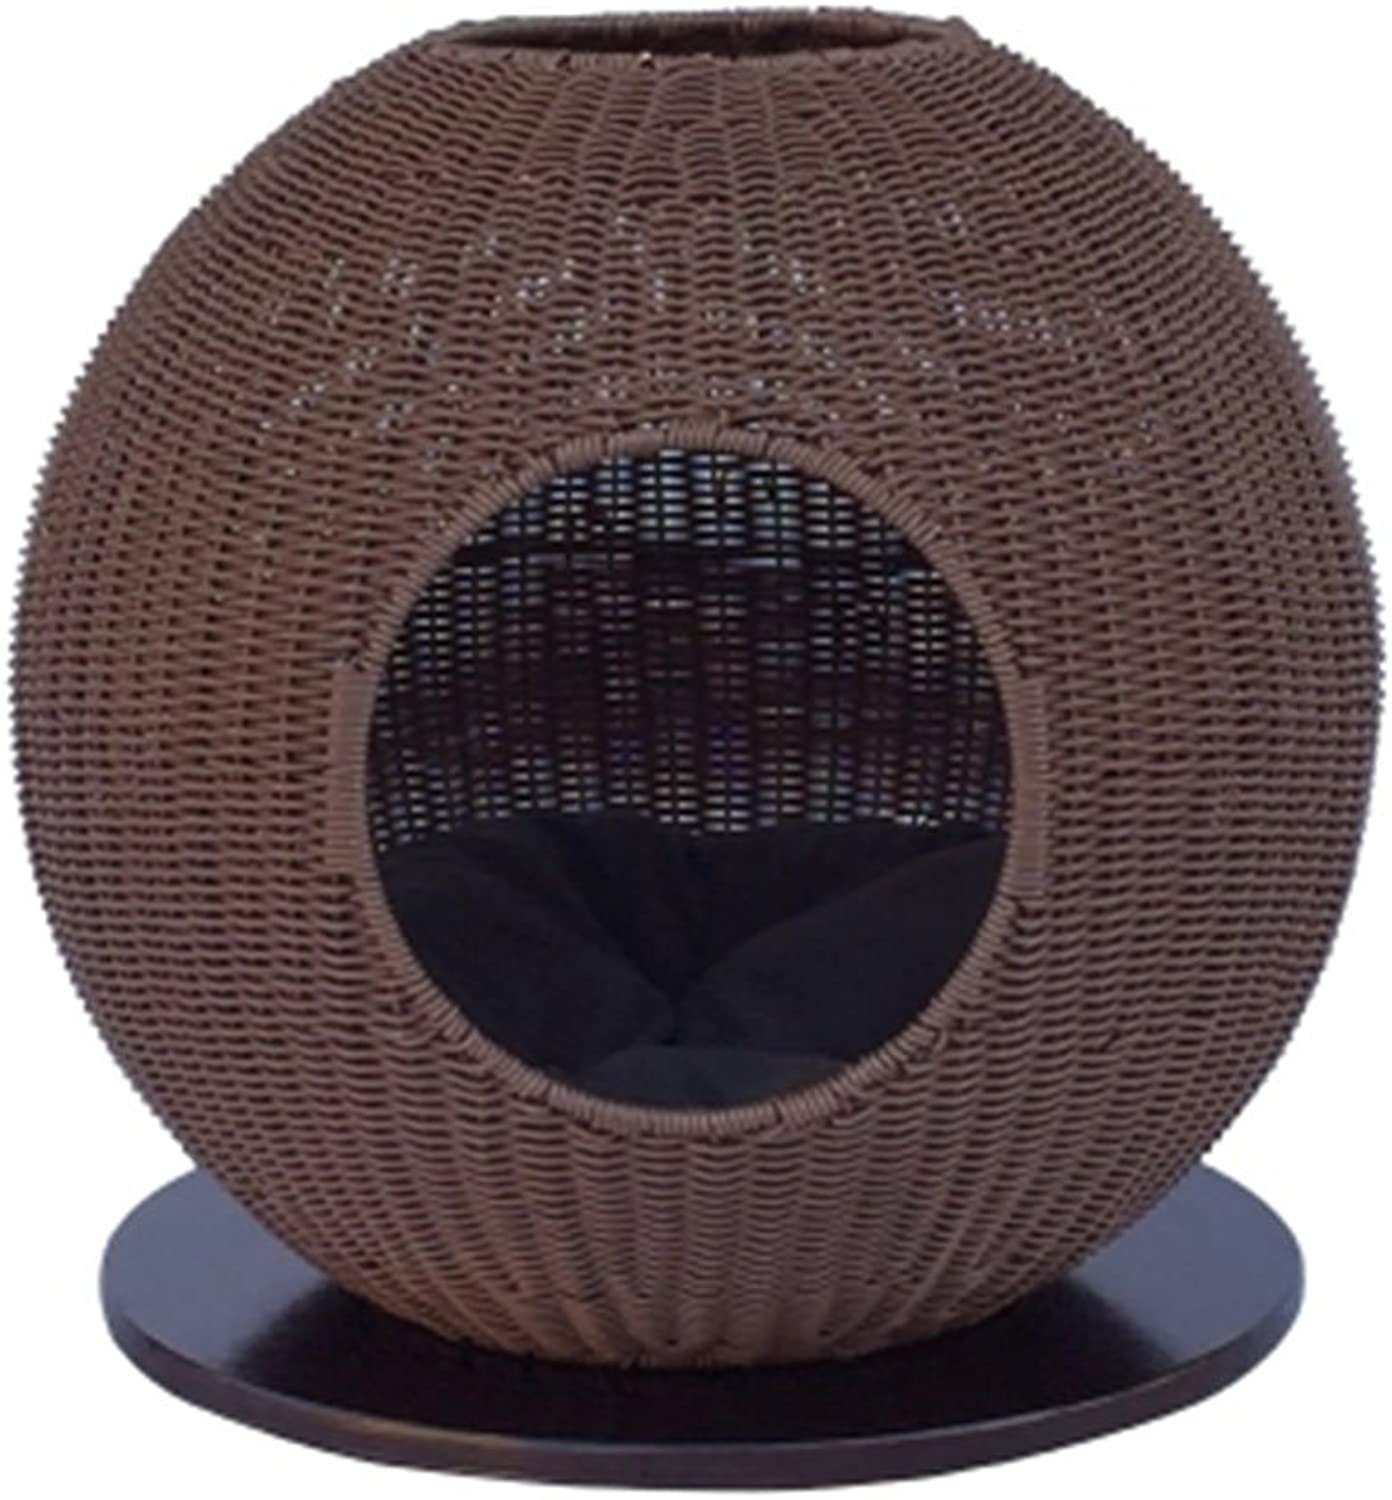 AosyGFR Rattan Round Summer Hot New Cat Litter Cat Climbing Frame House Cat Bed House Cat Toy Removable Wash Pad